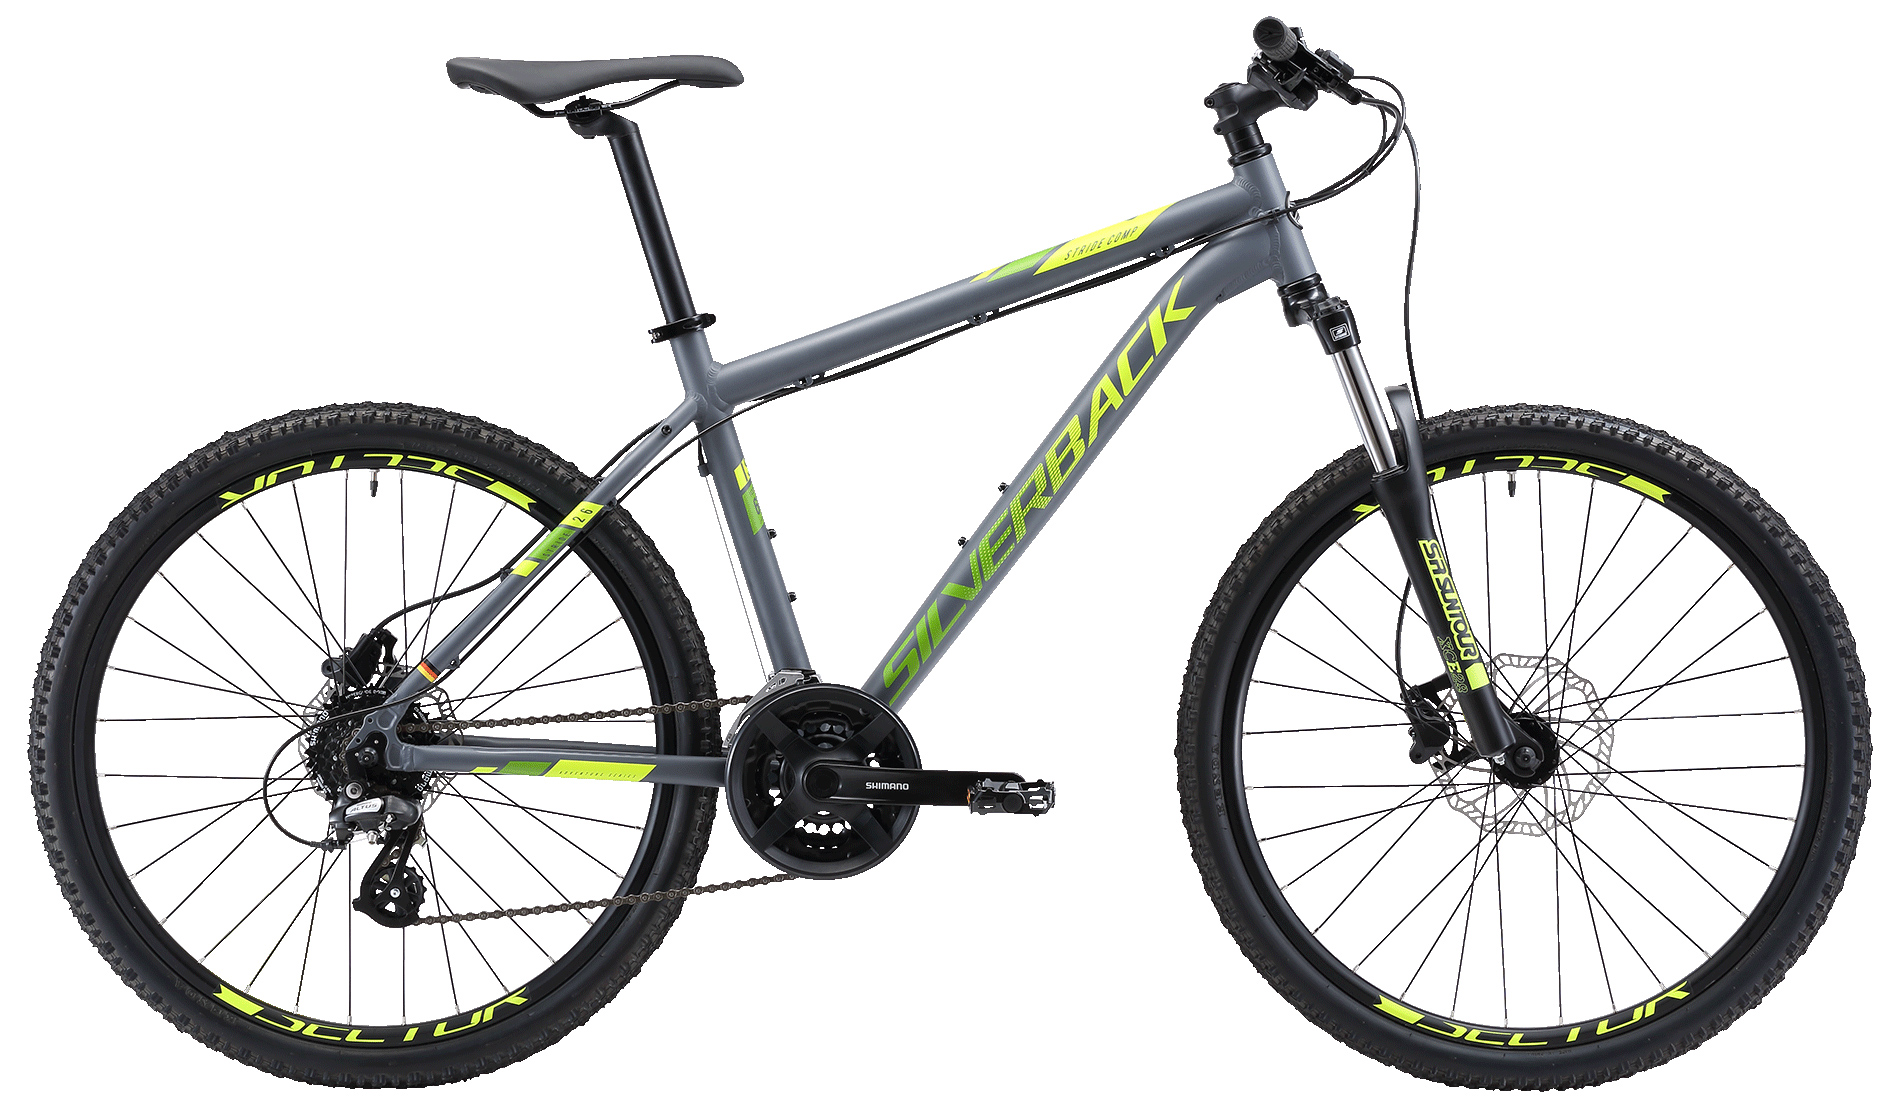 Велосипед Silverback Stride 26 Comp 2019 велосипед specialized myka fsr comp 2013